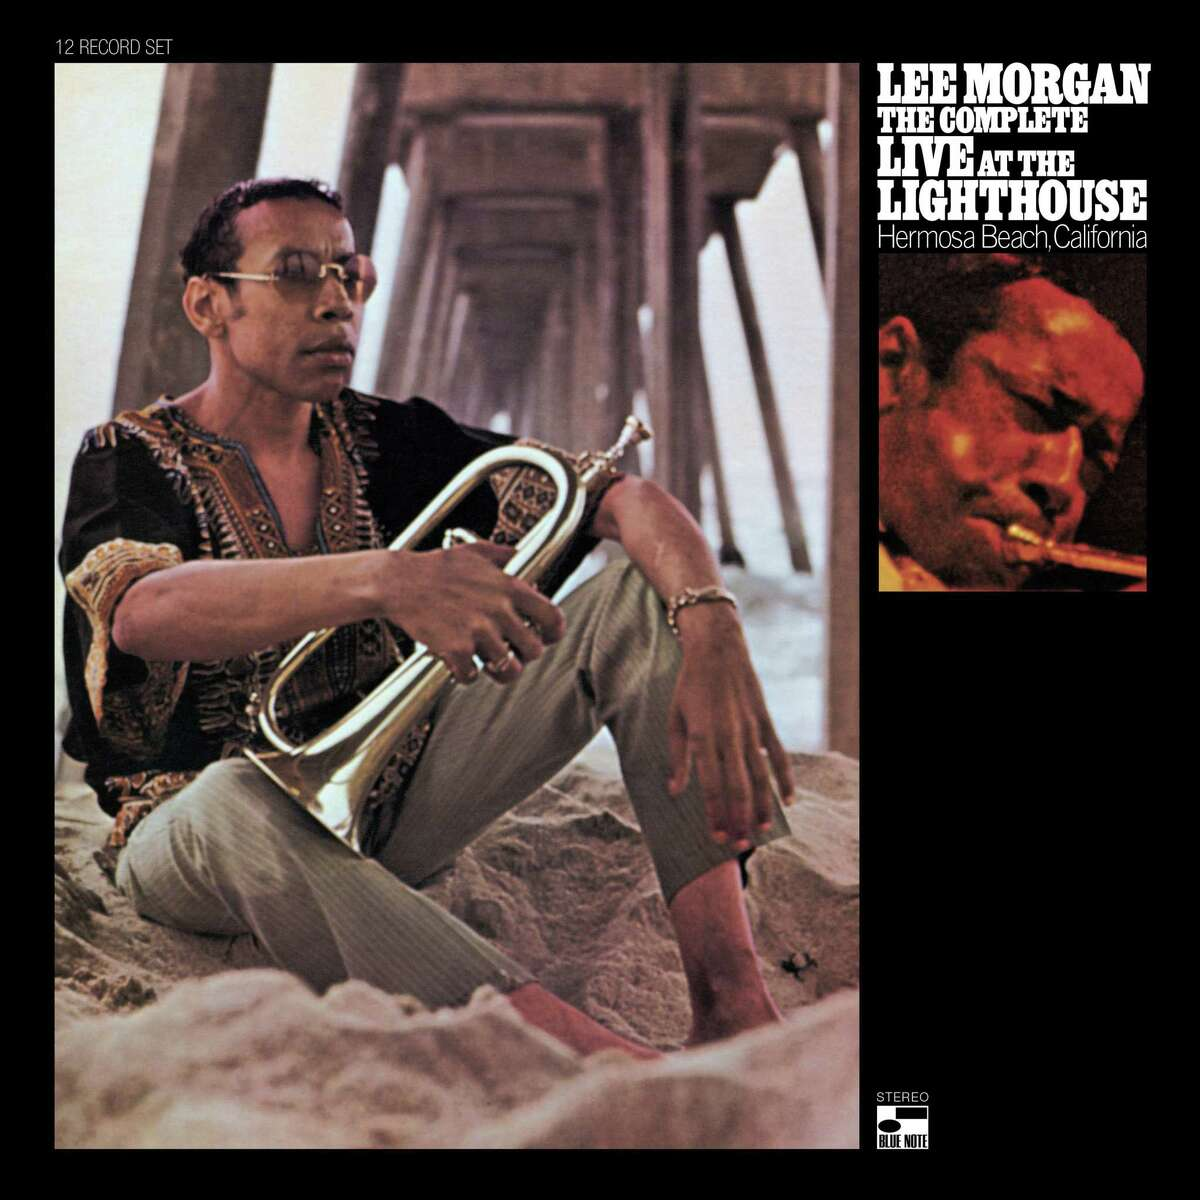 """Lee Morgan's """"The Complete Live At The Lighthouse"""" covers the entirety of his group's run at the California club in 1970."""